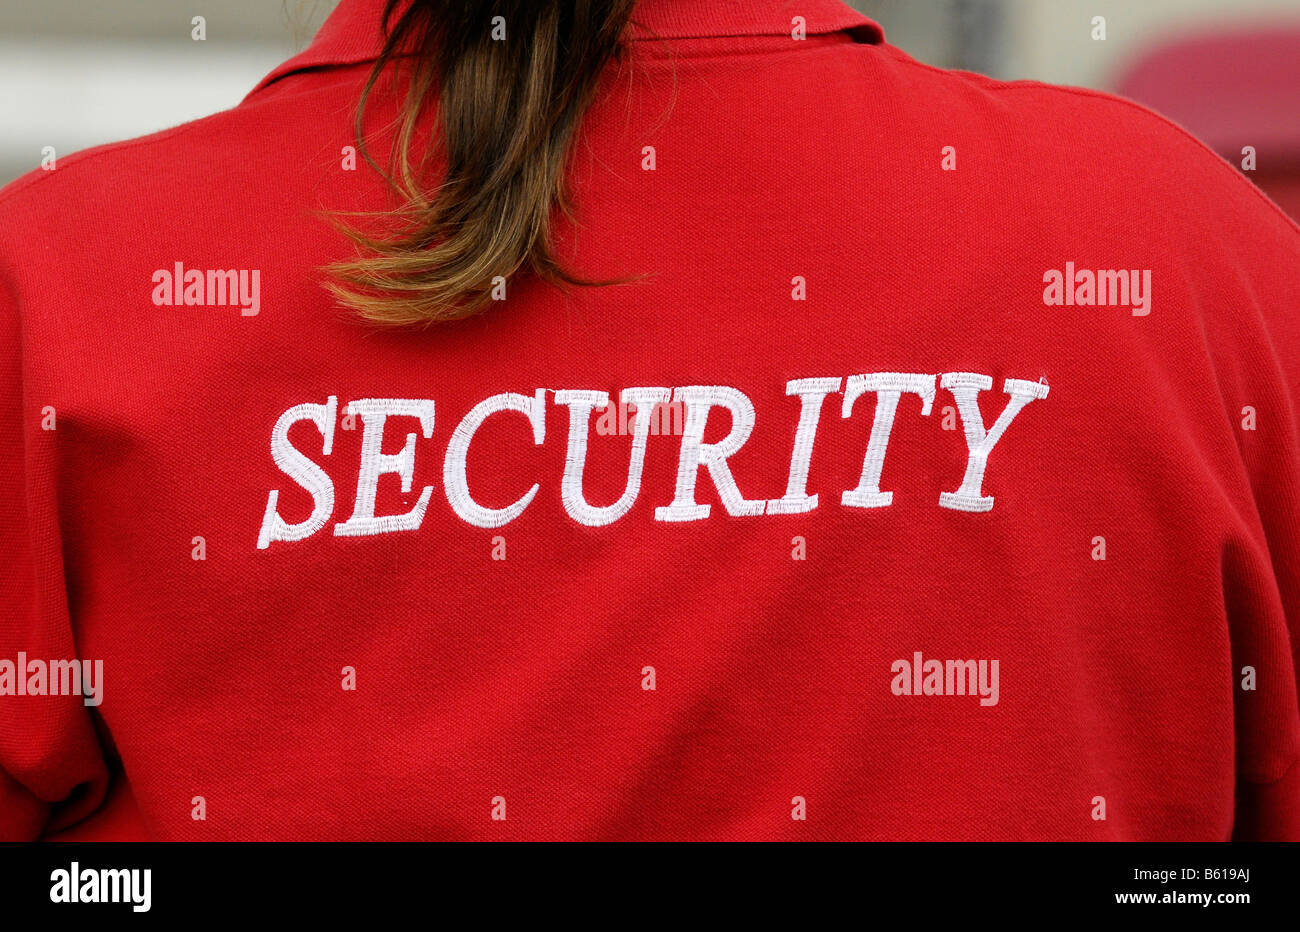 Security written on a red T-shirt - Stock Image